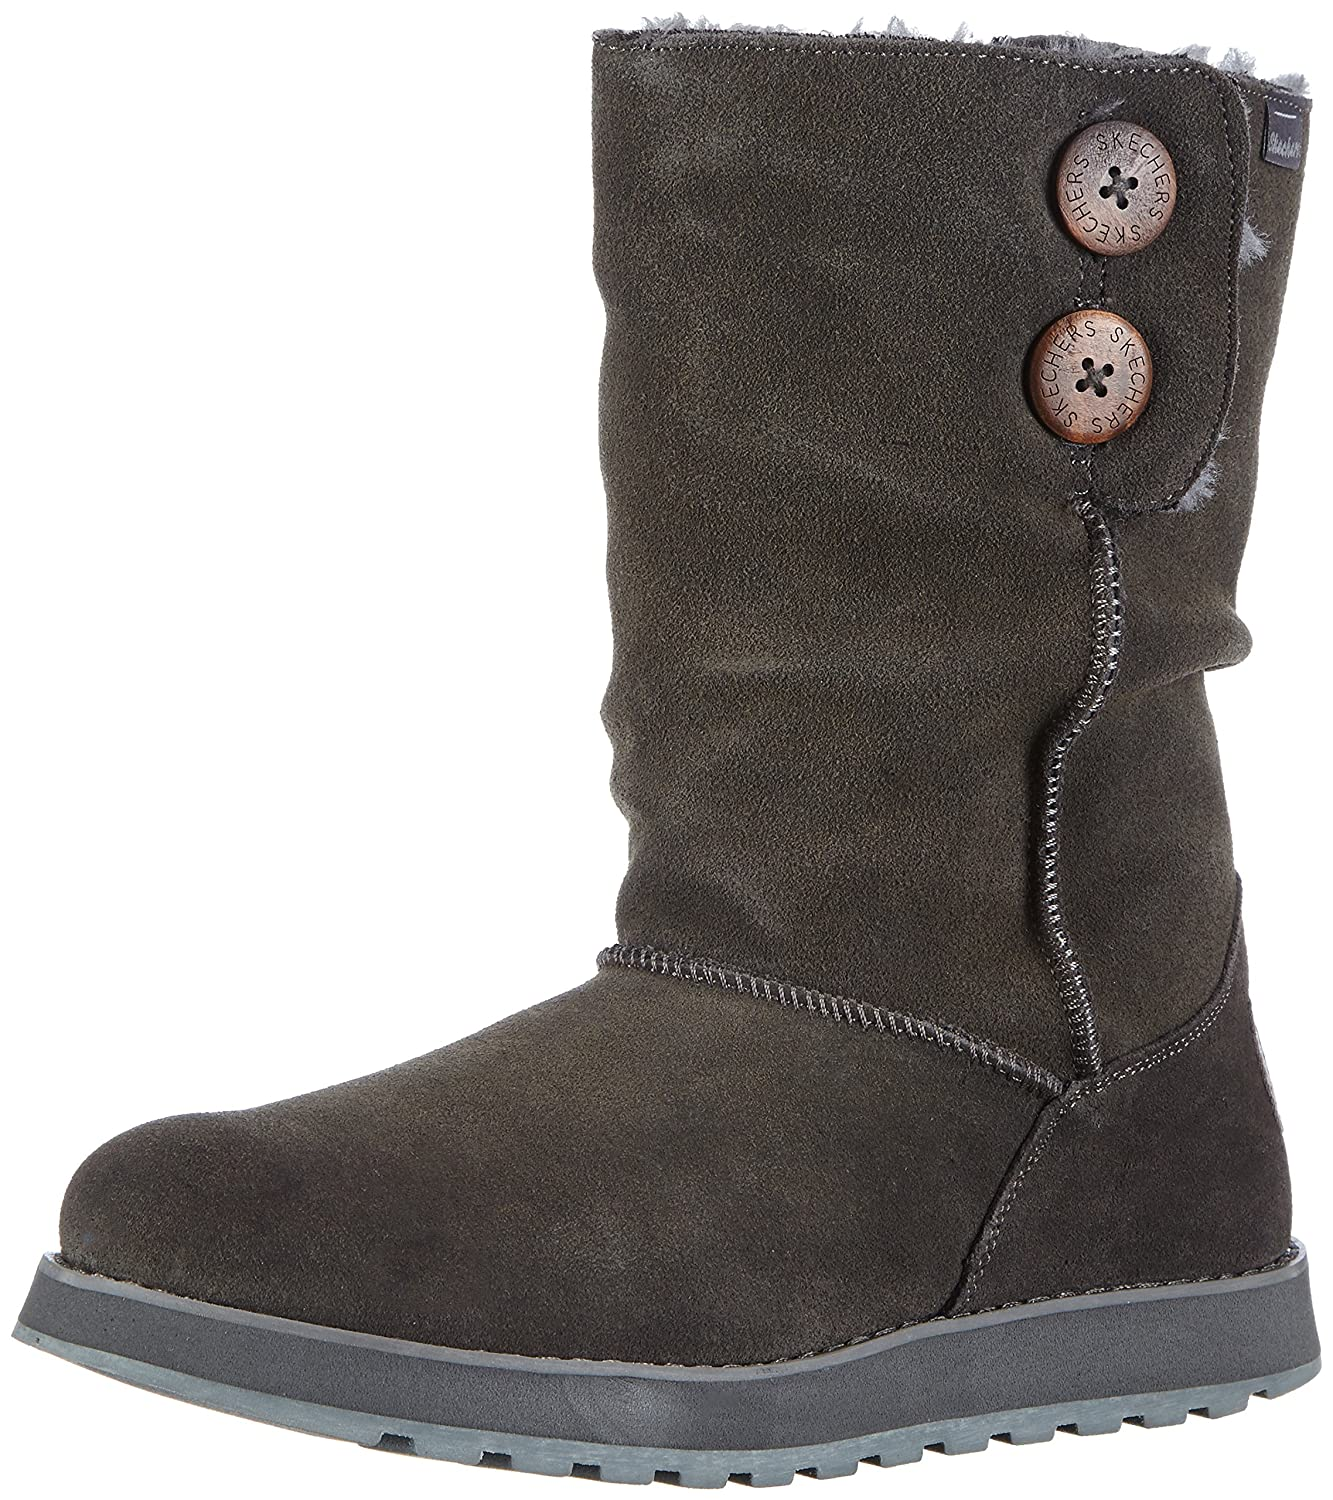 Skechers Keepsakes Freezing Temps Damen Halbschaft Stiefel  38 EU|Grau (Ccl)